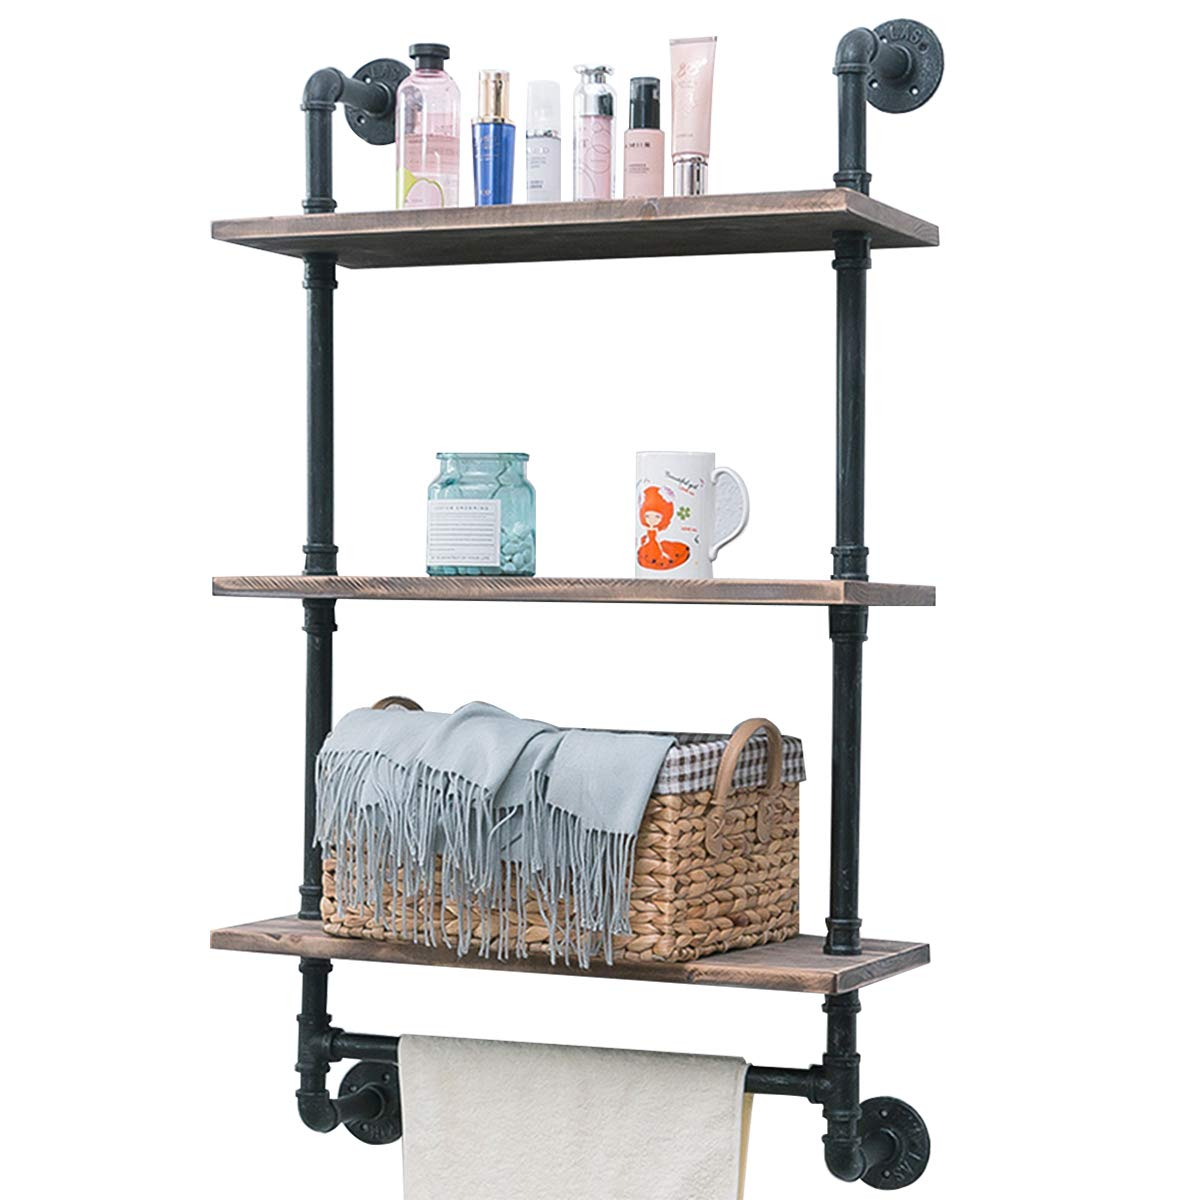 MBQQ Industrial Pipe Bathroom Shelves Wall Mounted with Towel Bar Wood Shelves Organizer Towel Racks menbonqiqi